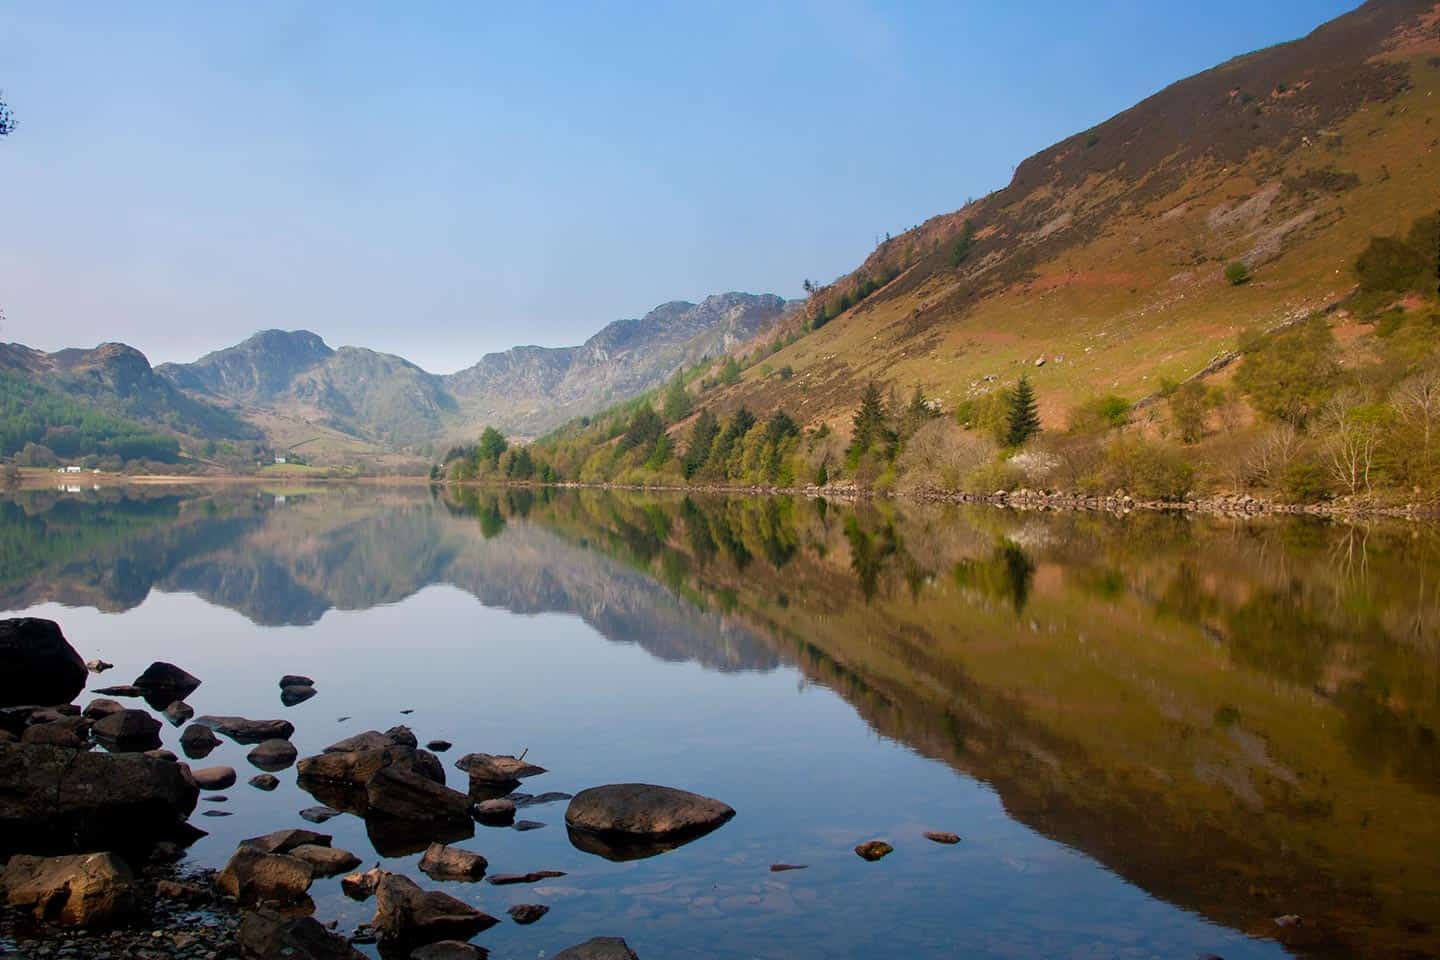 Image of Llyn Crafnant lake in Snowdonia